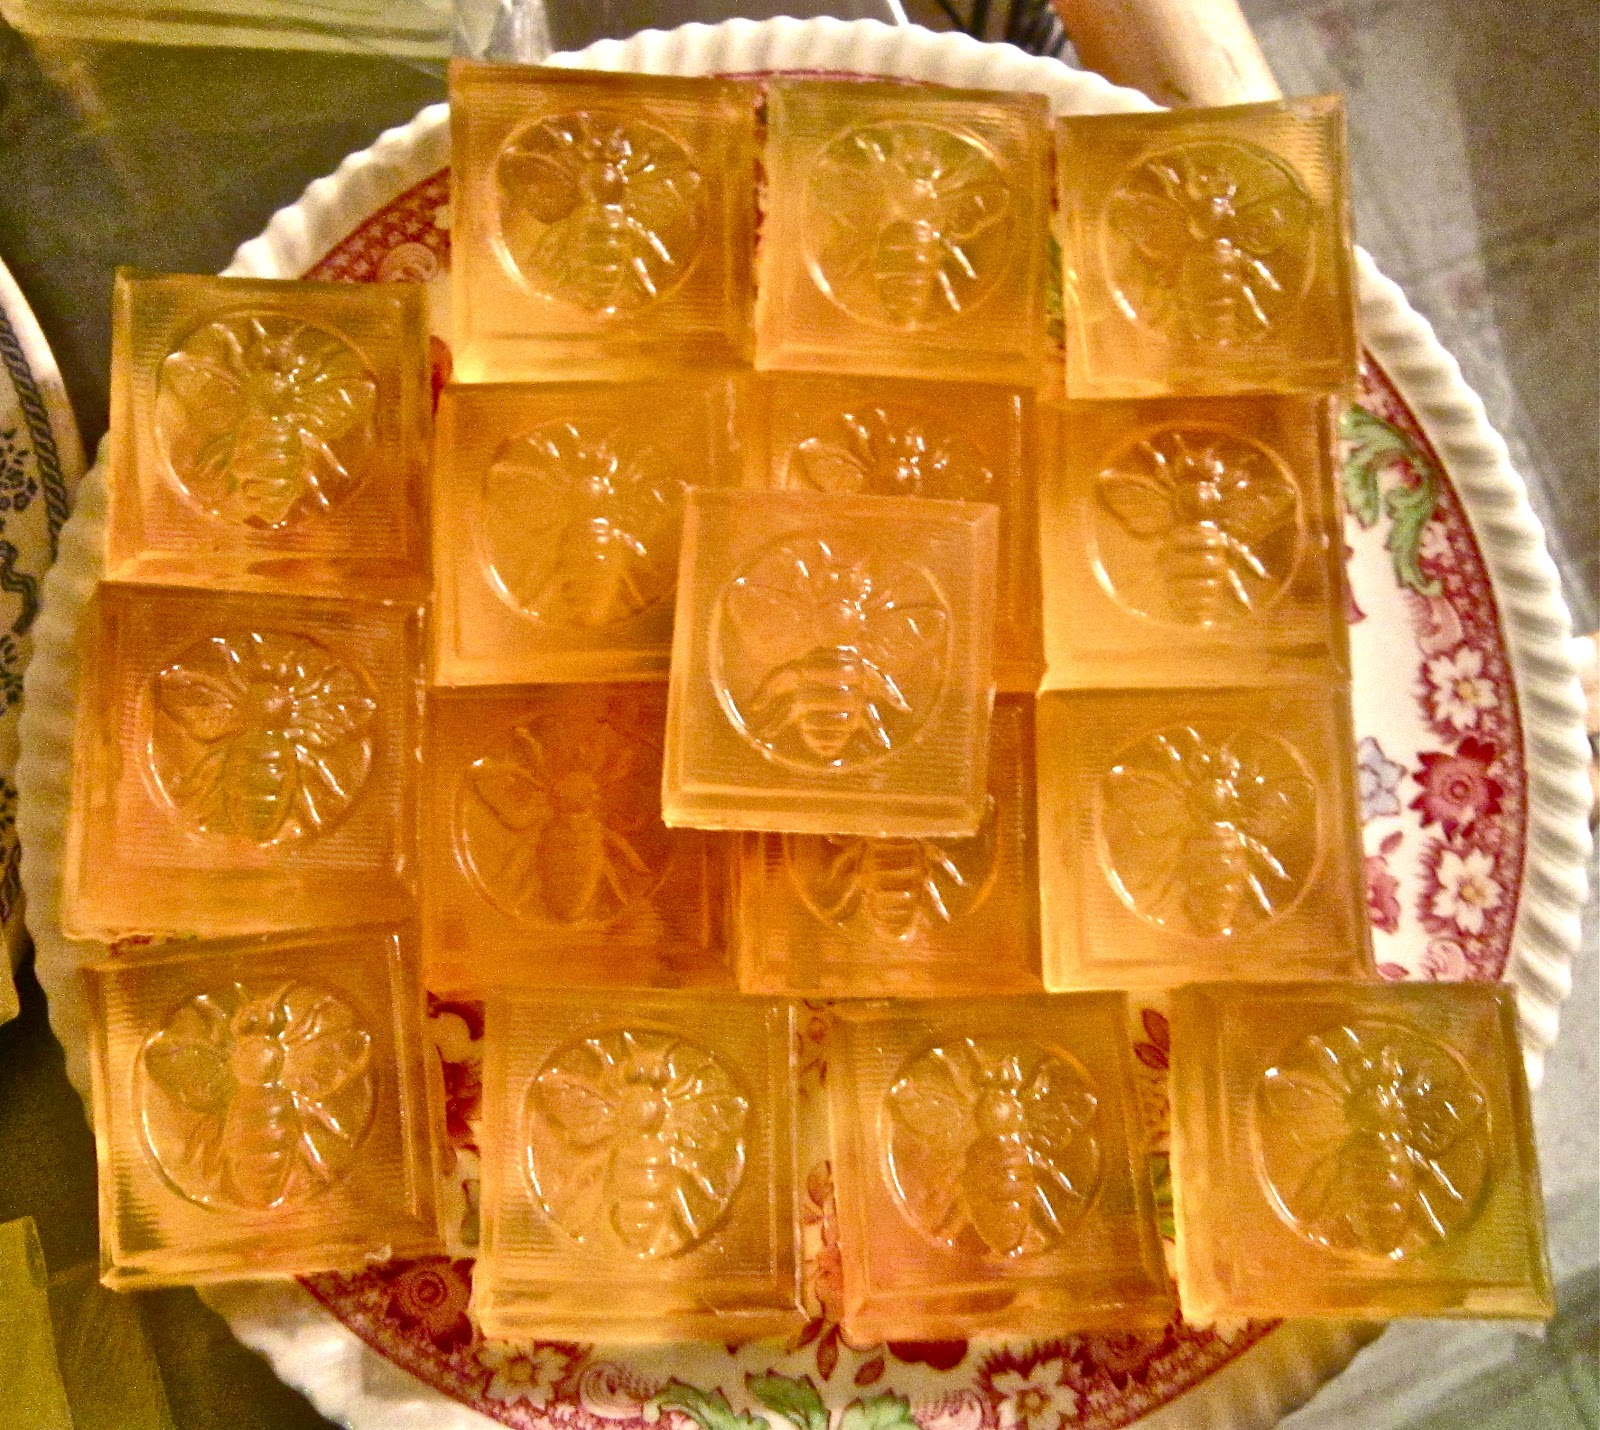 Song Garden Soap: Honey Almond Biscotti Squares, White Tea and Ginger ...